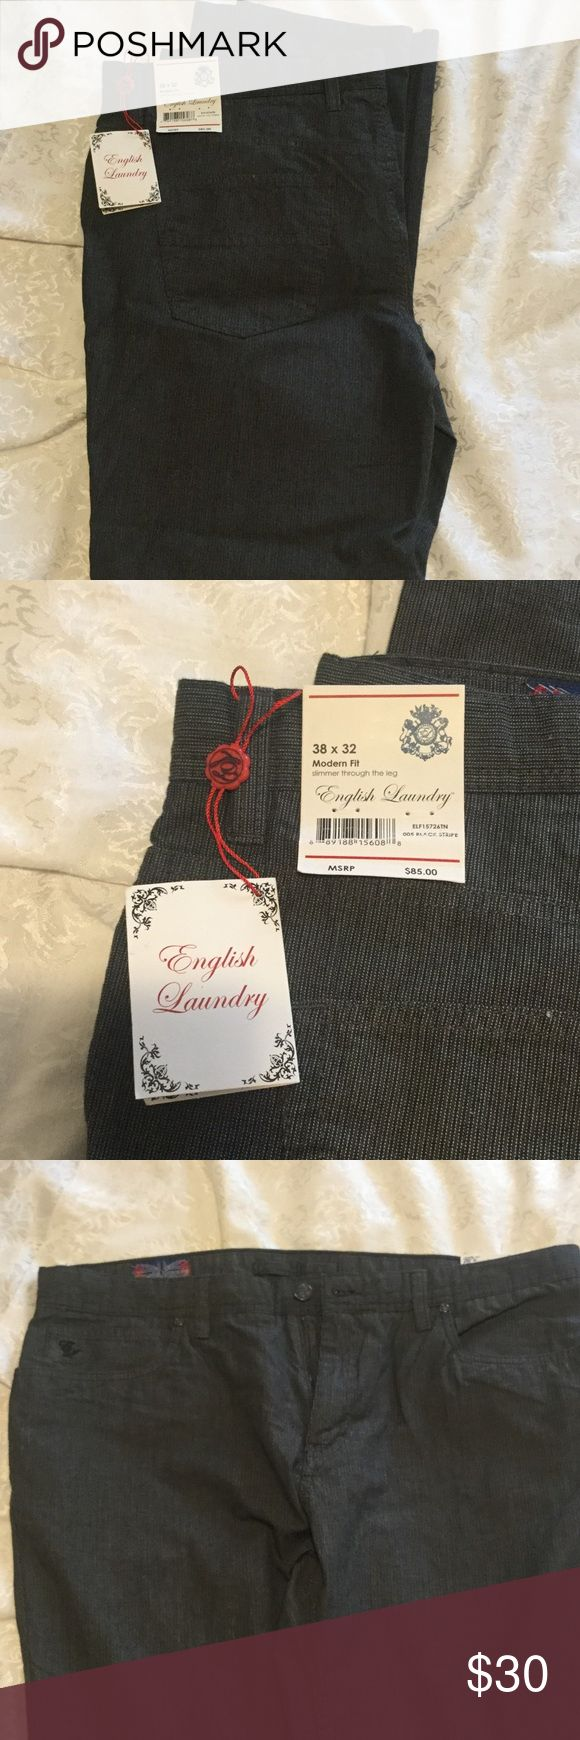 English Laundry men's casual pants new with tags. Never worn English laundry brand men's pants. Size 38×32. Frankly fits more like a 36 waist. New with tags black stripes. English Laundry Pants Chinos & Khakis